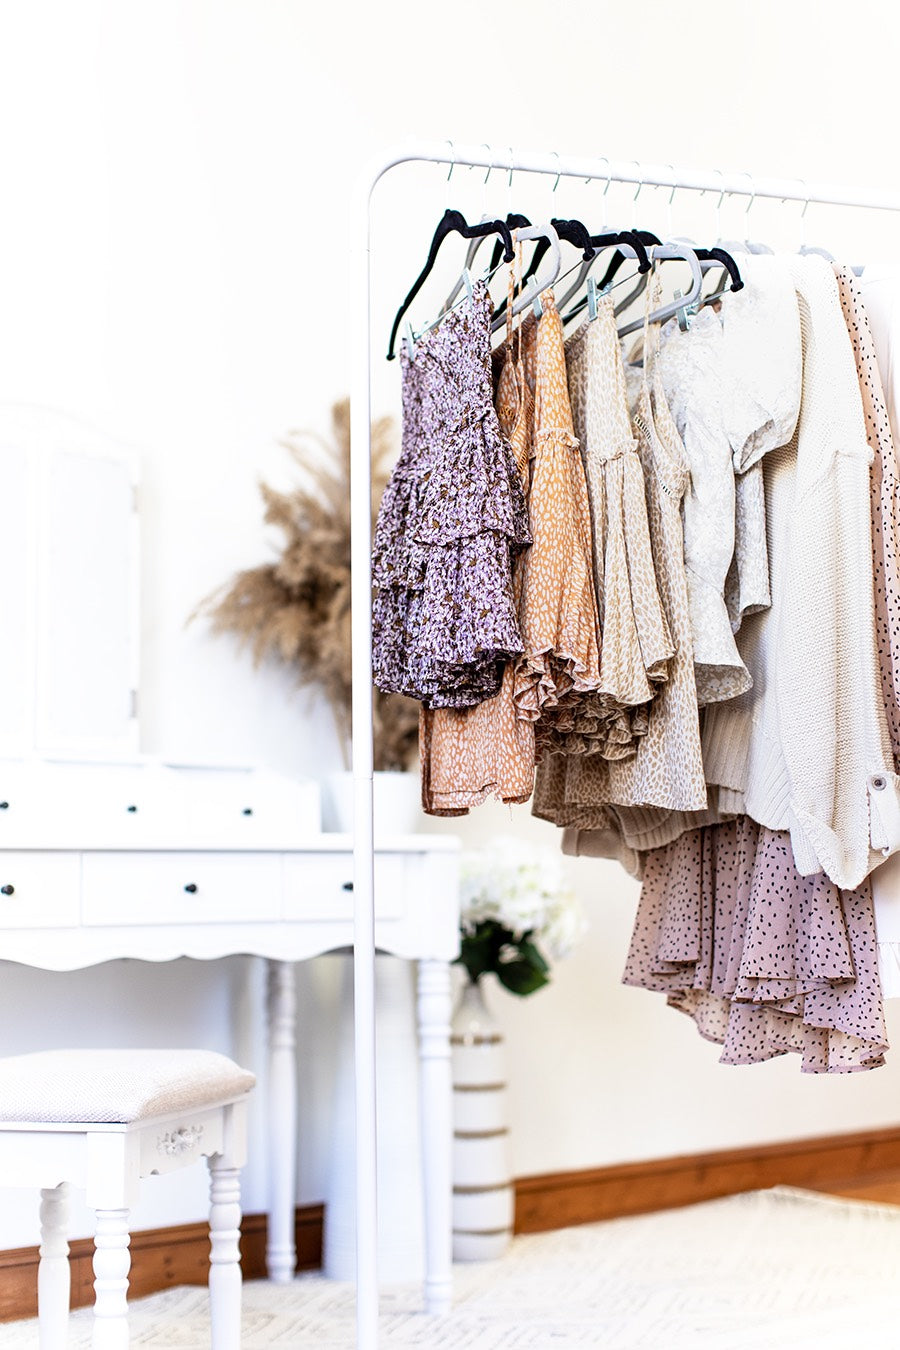 women casual spring style on a rack in a sunny room